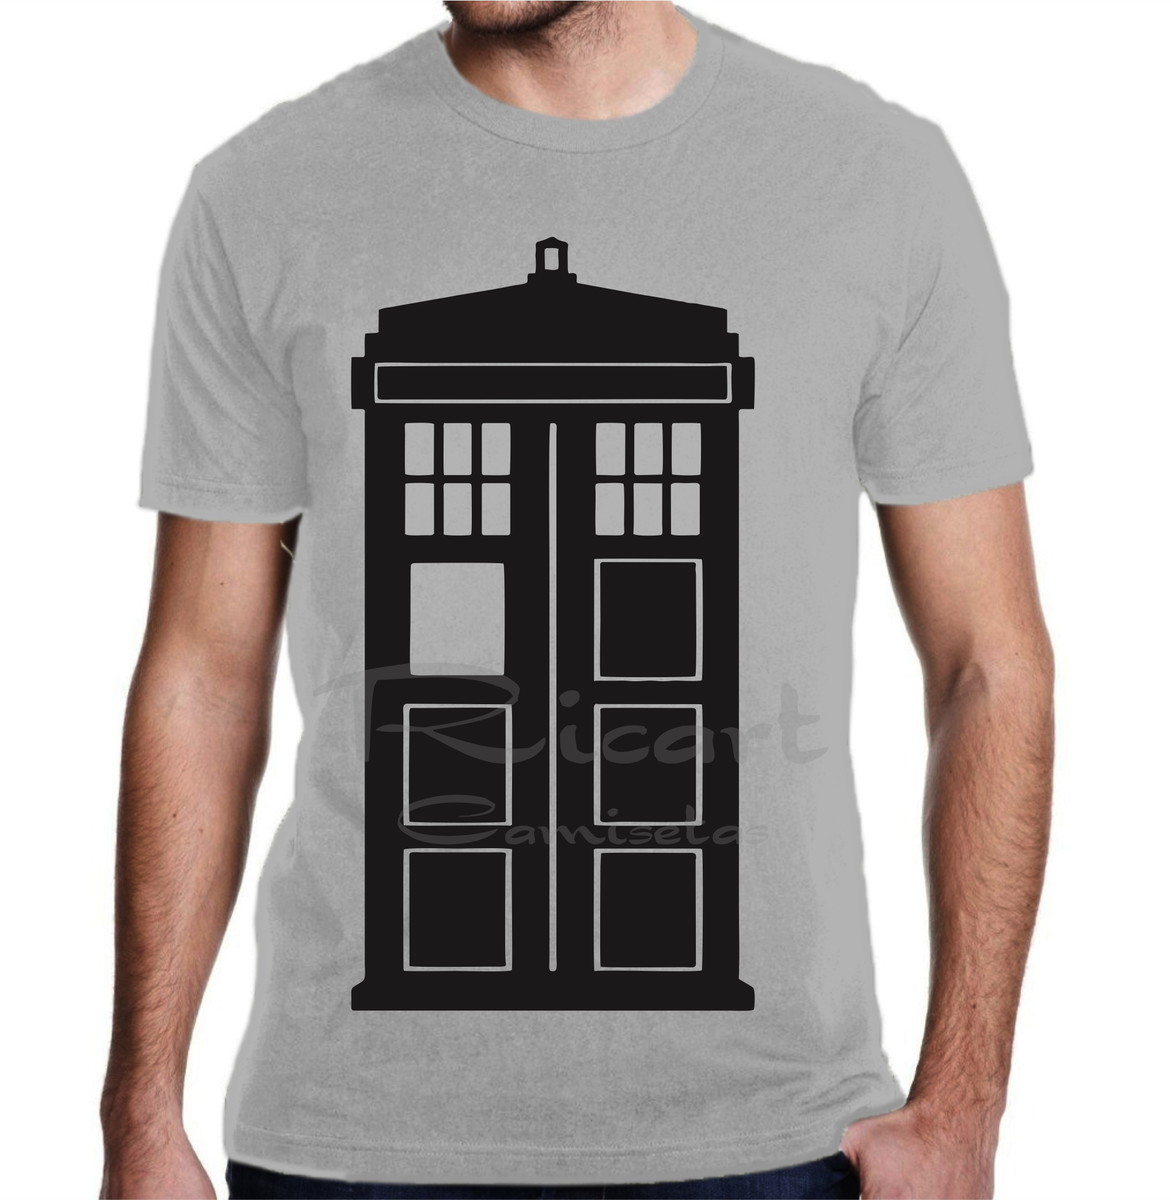 f5ab68c4afd9c Camiseta Doctor Who Time Lords Série Mod 03A no Elo7 | Ricart ...